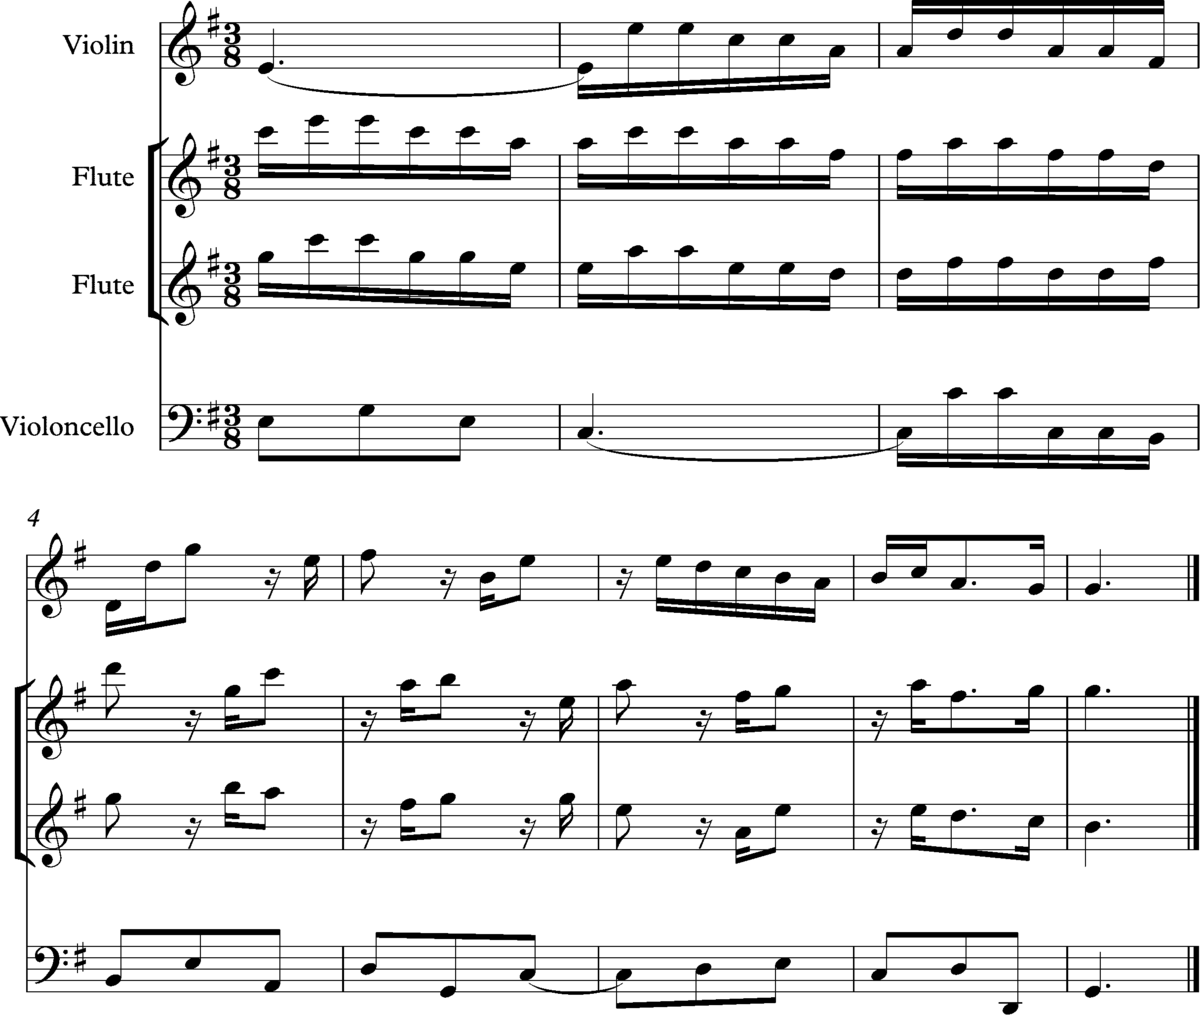 Bach Brandenburg Concerto No. 4 ending bars of the first movement Bach Brandenburg 4 closing bars of first movement.png